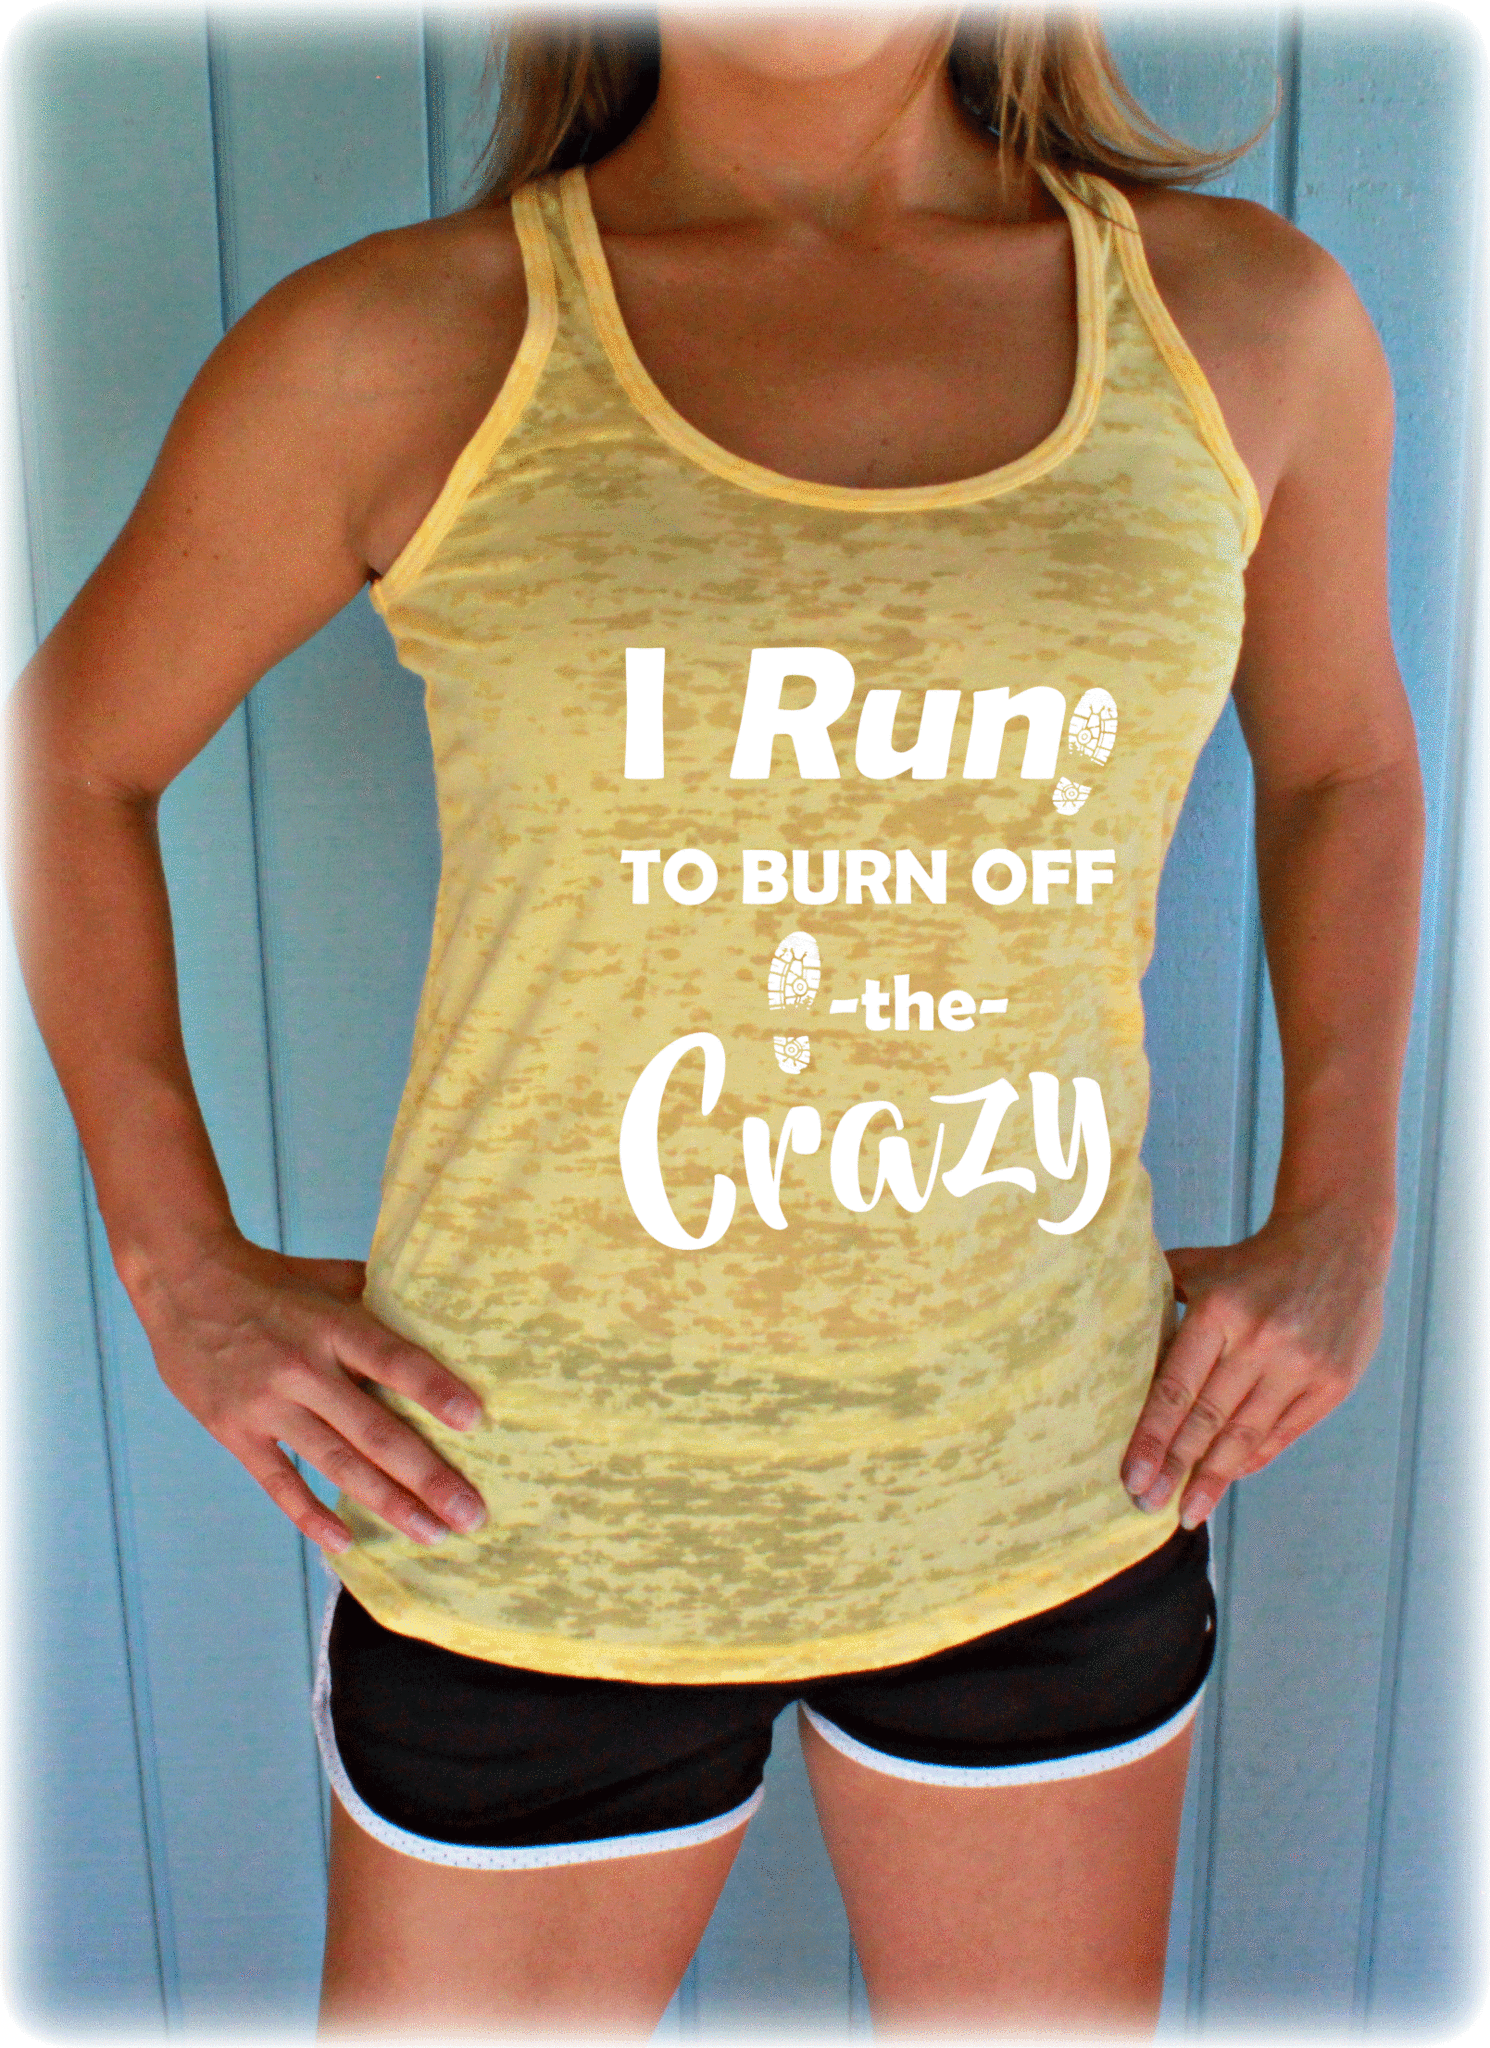 I Run to Burn Off the Crazy Tank Top. Women's Runner's Burnout Workout Tank.